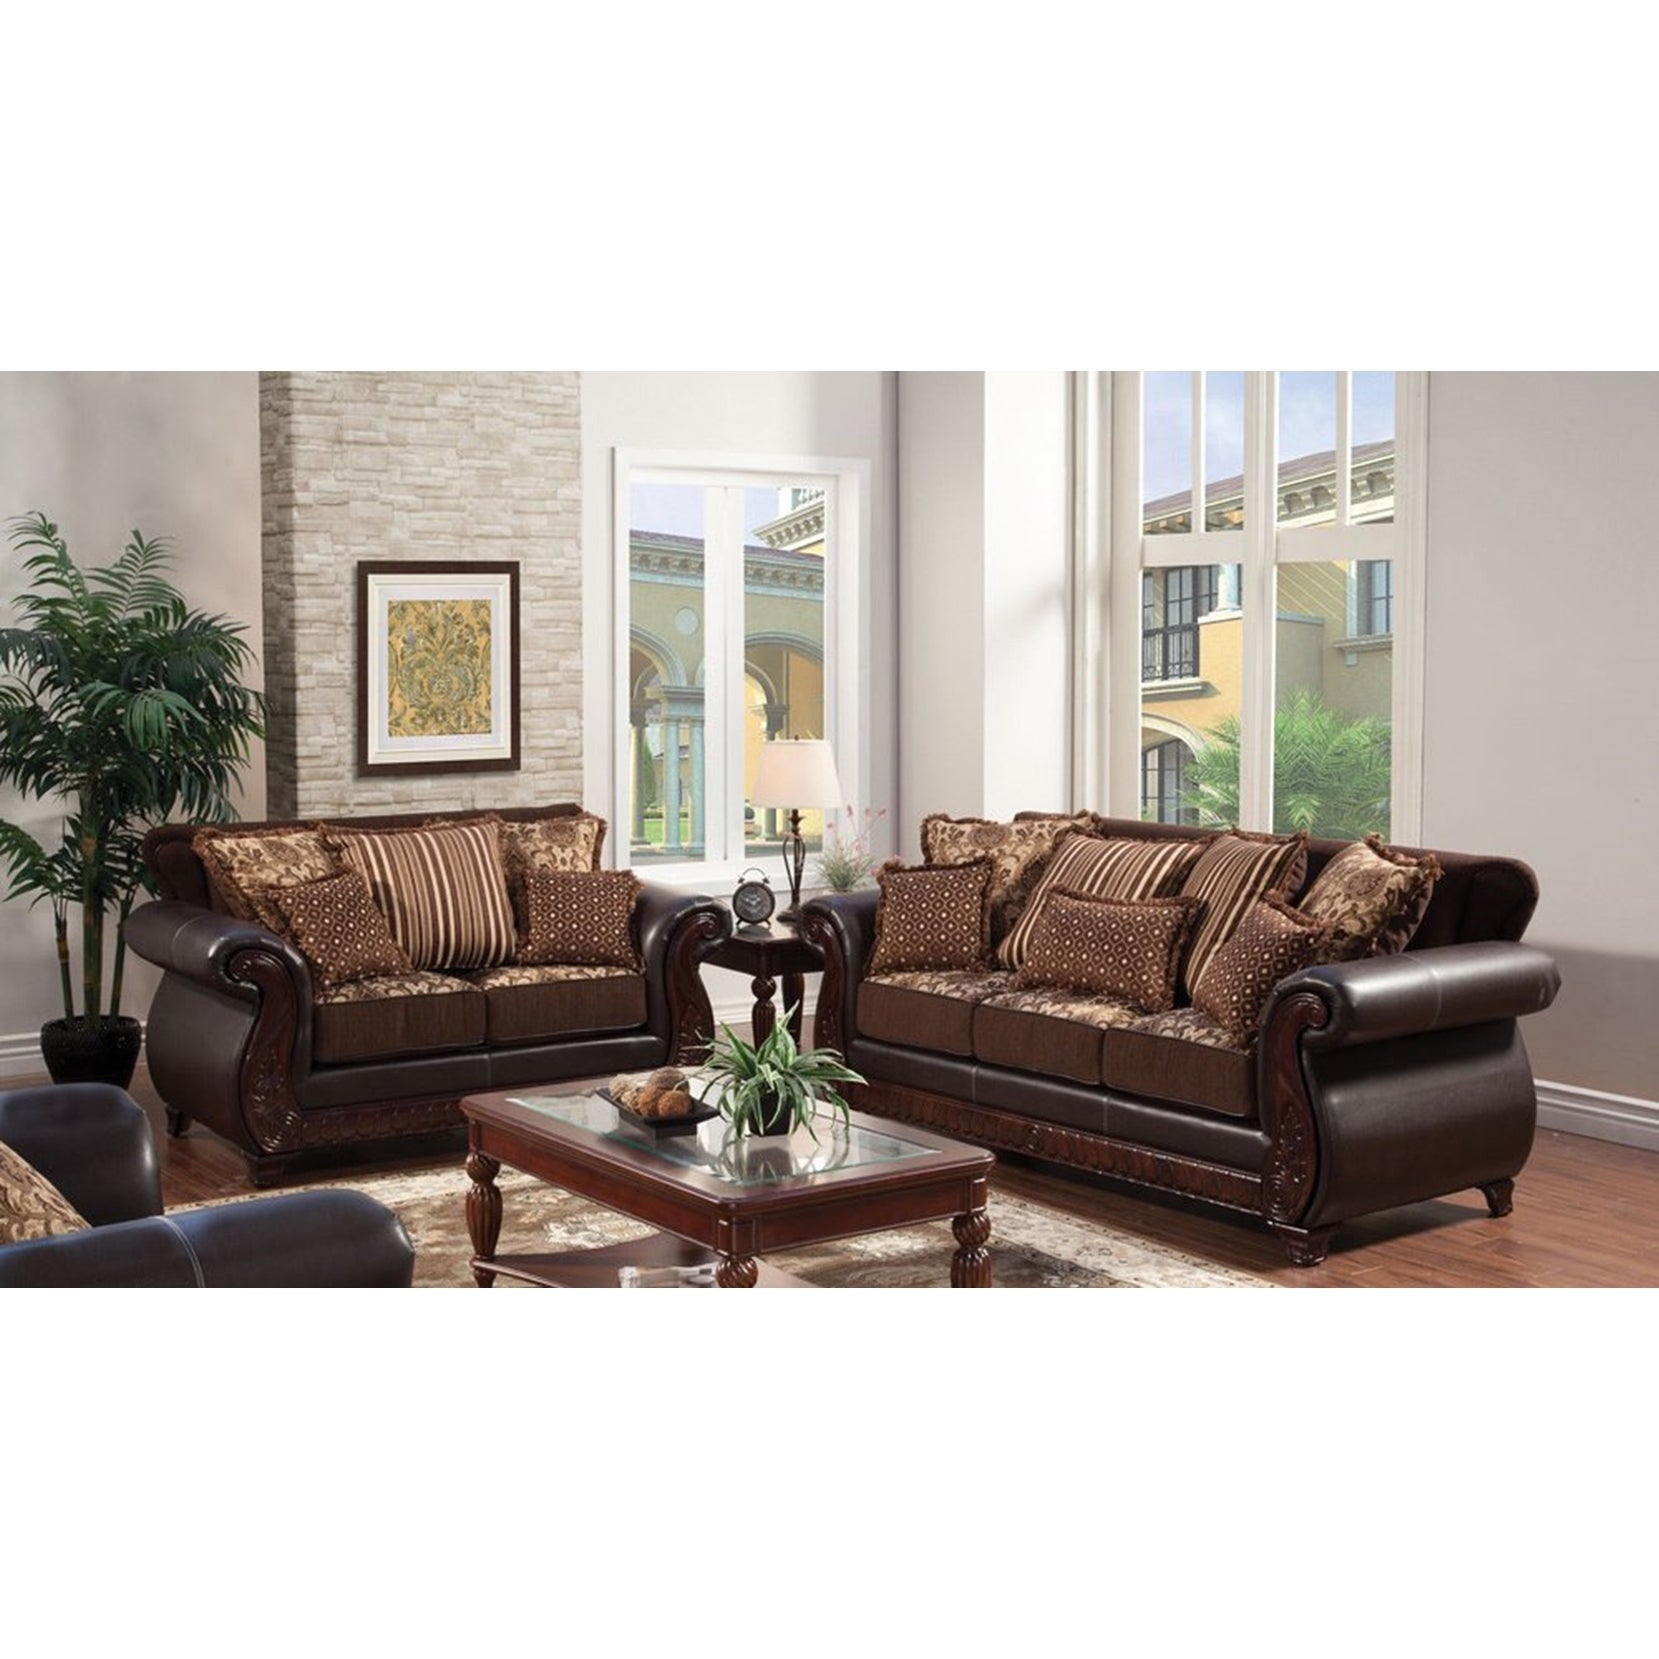 Furniture of America Corz Traditional Red Fabric 2-piece Sofa Set